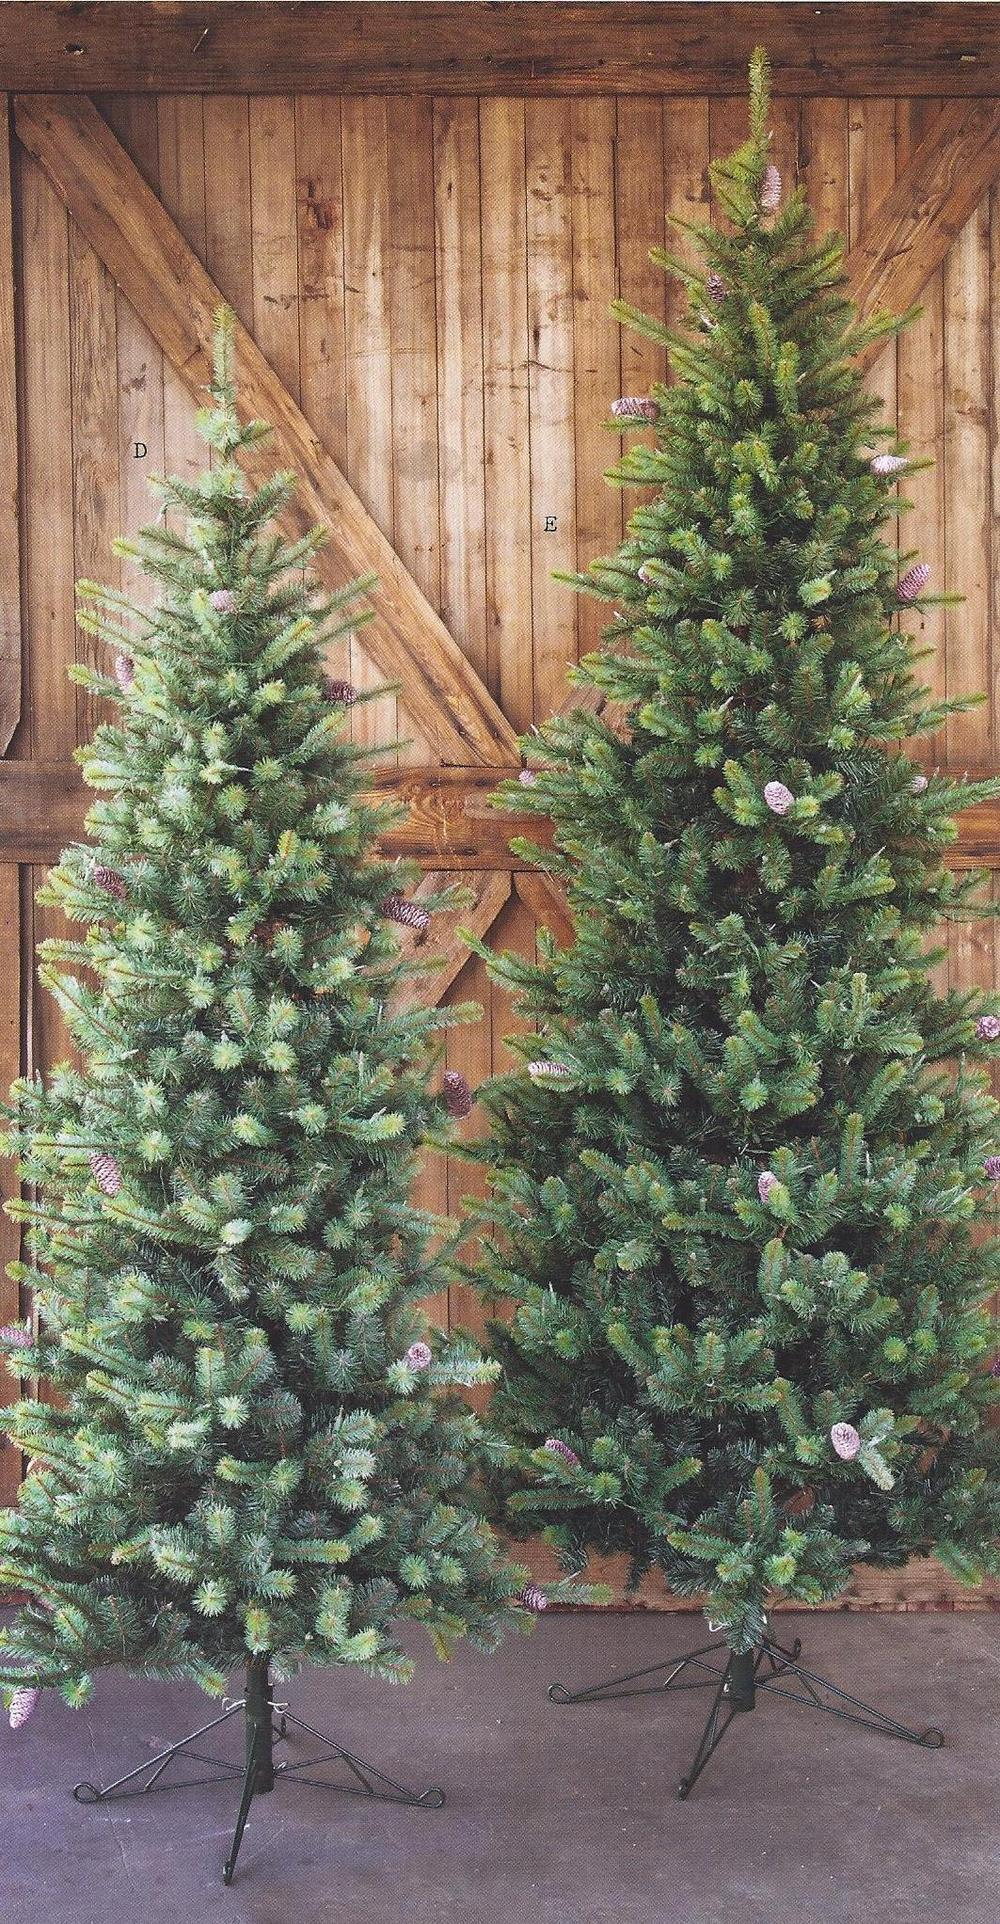 Christmas.trees.undecorated.providence.ltd.design.jpg